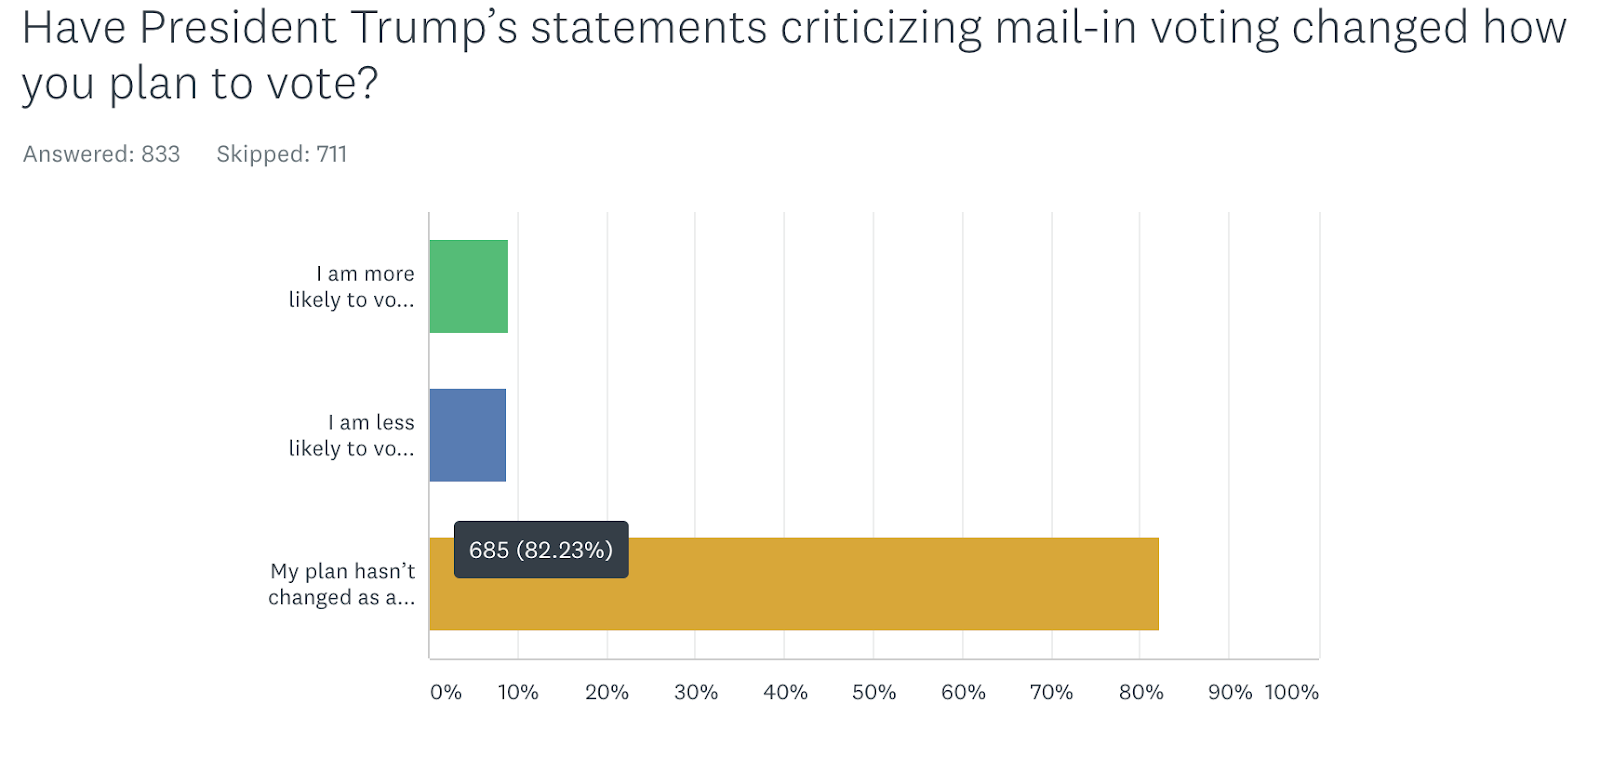 Have President Trump's statements criticizing mail-in voting changed how you plan to vote? I am more likely to vote by mail because of his comments 8.99%75; I am less likely to vote by mail because of his comments  8.75%73; My plan hasn't changed as a result of his comments 82.25%686